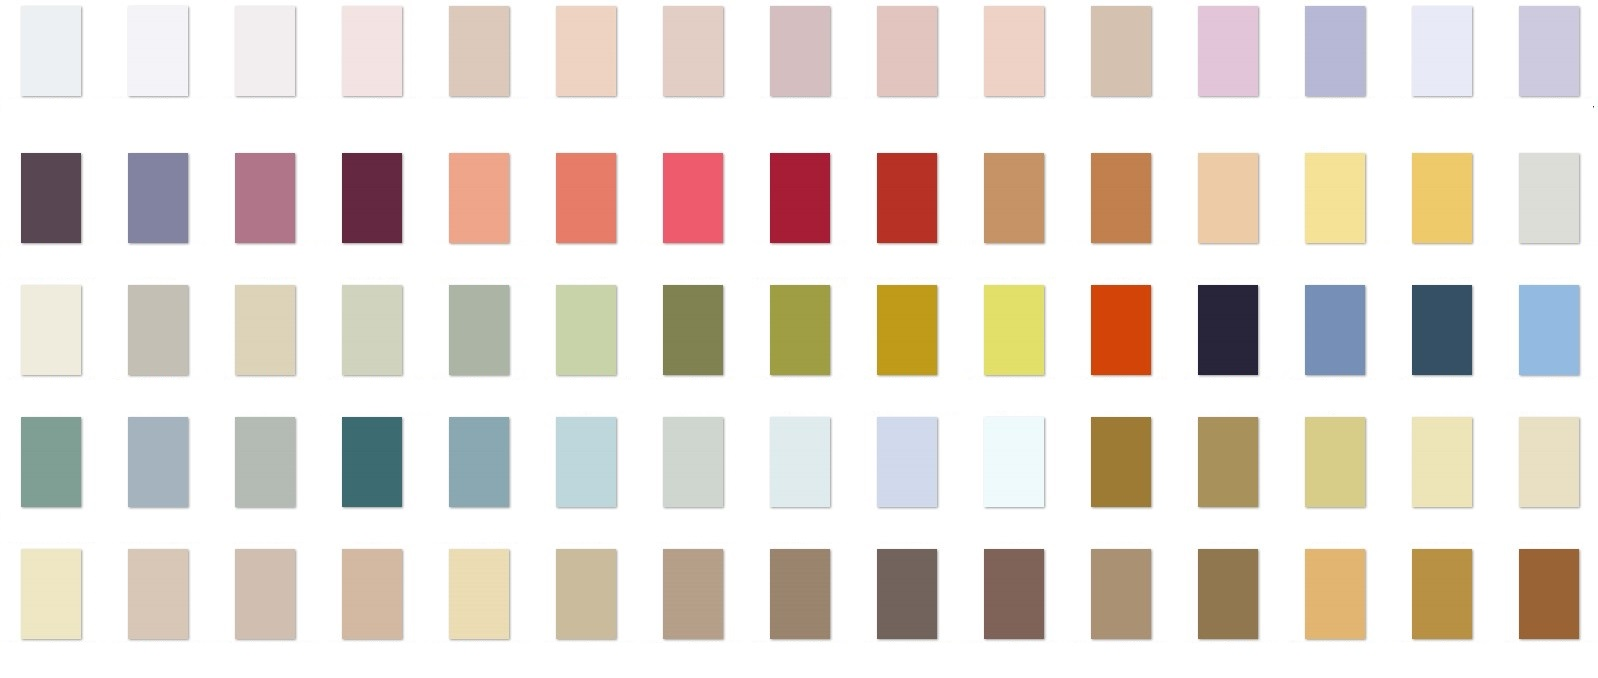 CLASSIC_colors_sampler_Color_Card_page.jpg